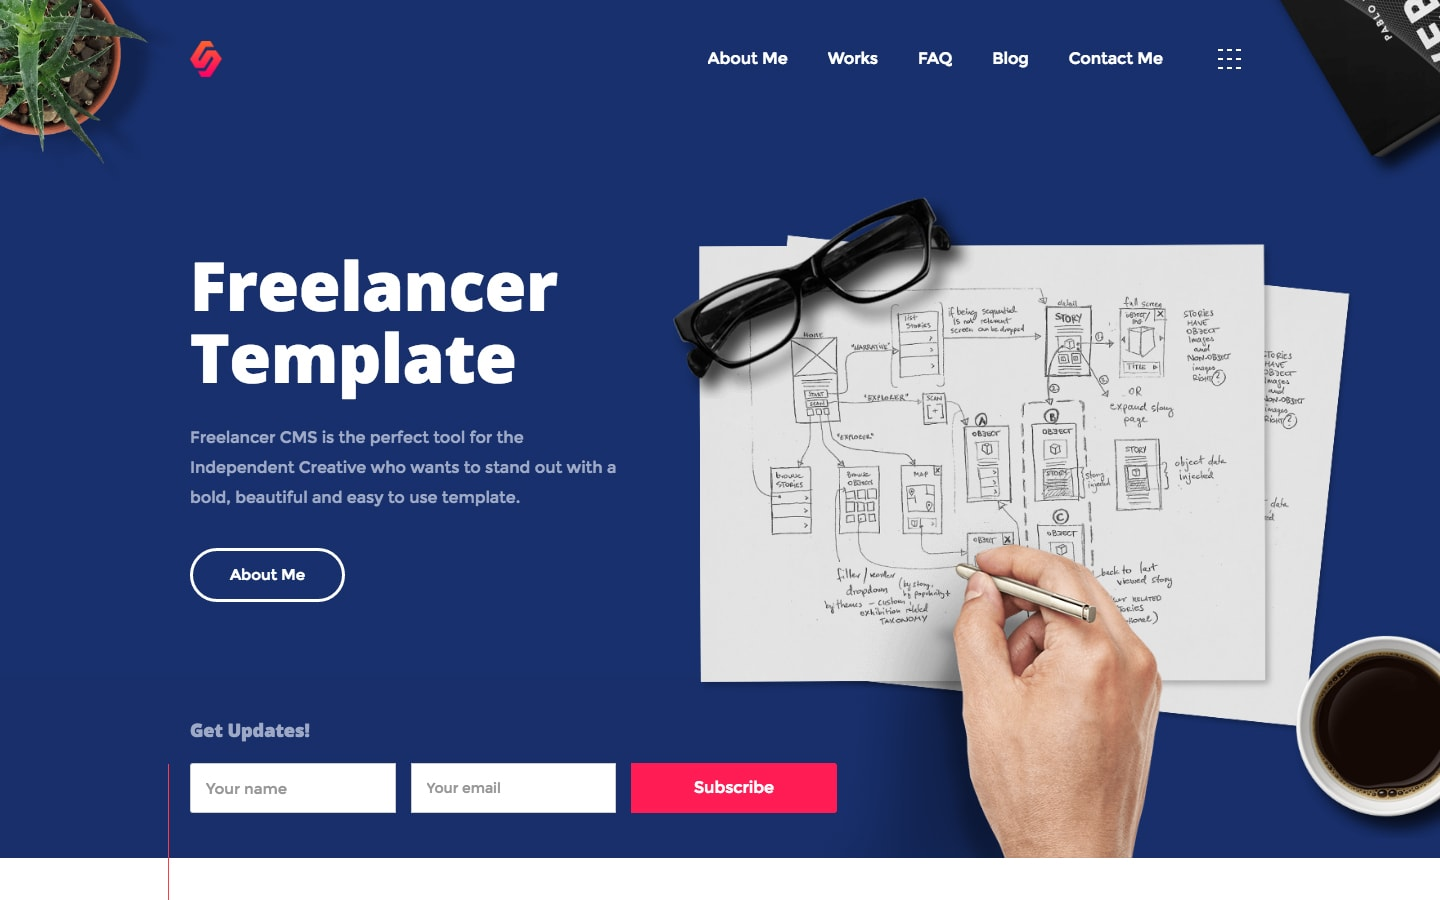 Top Webflow Themes For Your Business from UIGarage